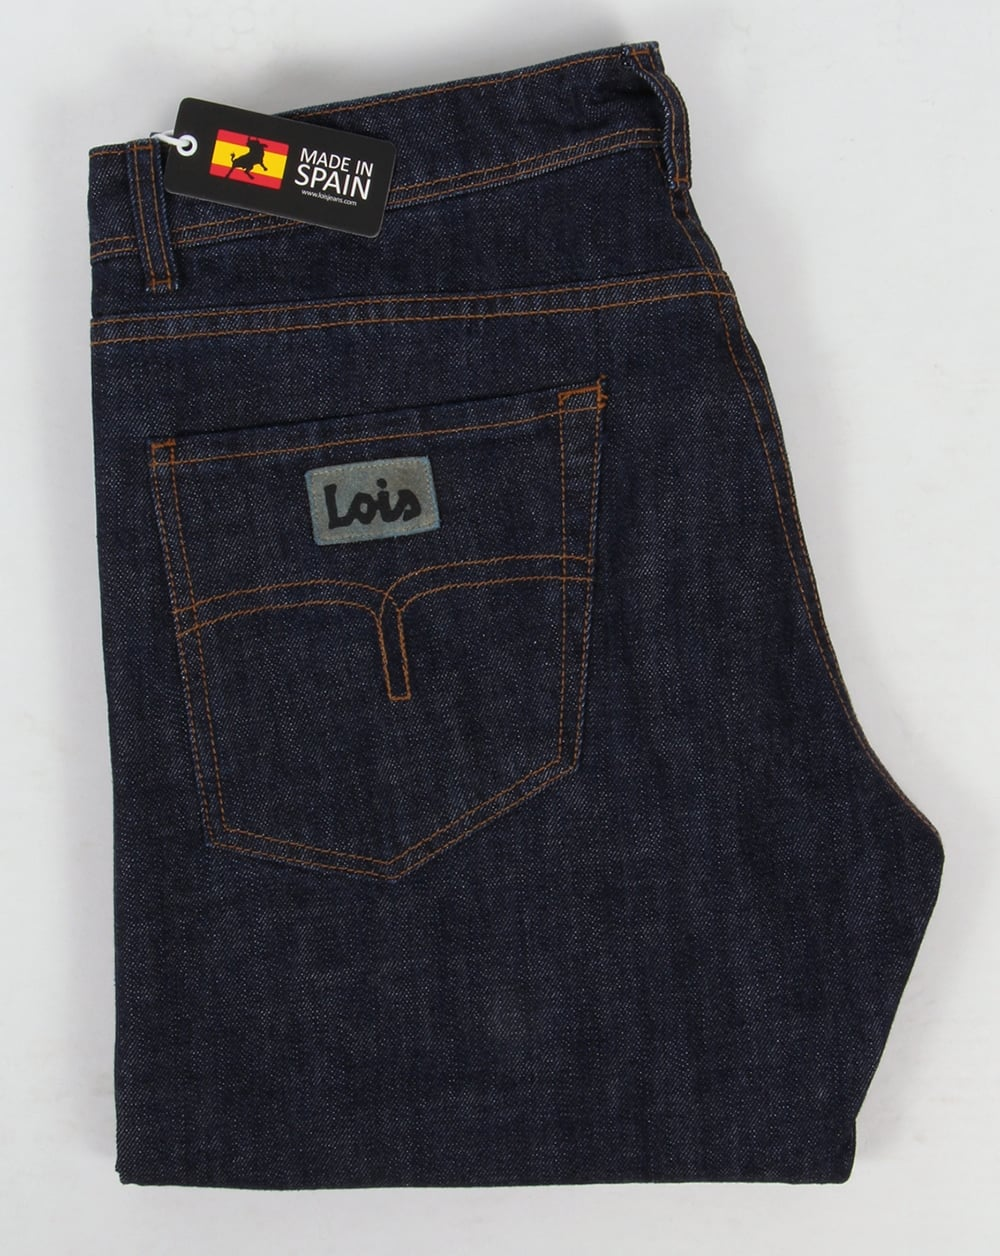 Lois Marvin Classic Straight Leg Jeans Dark Wash Mens